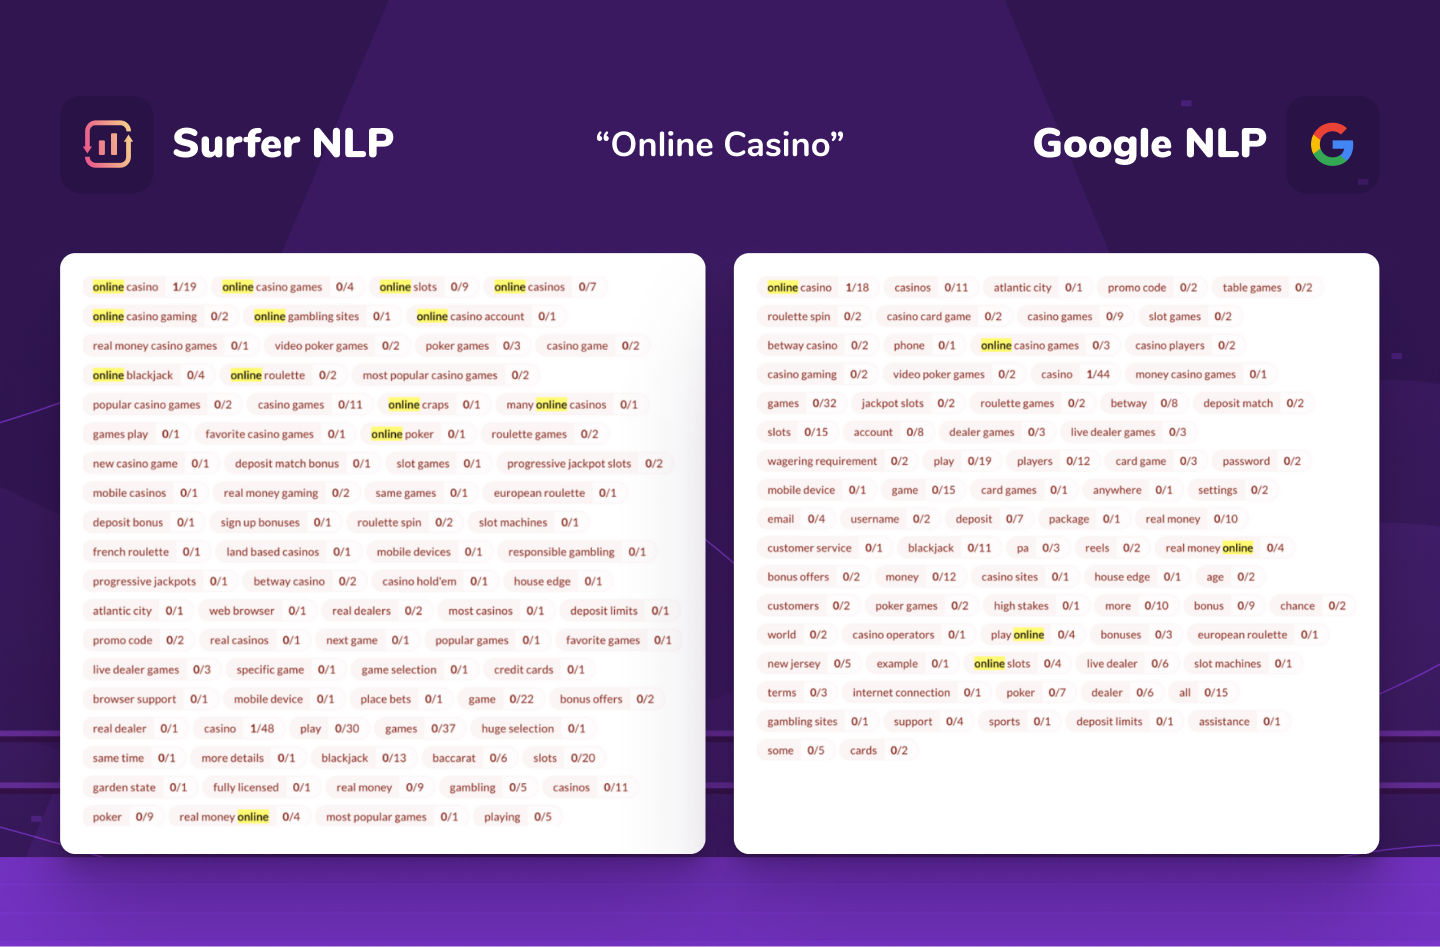 """comparison of Surfer NLP and Google NLP for """"online casino"""" keyword"""